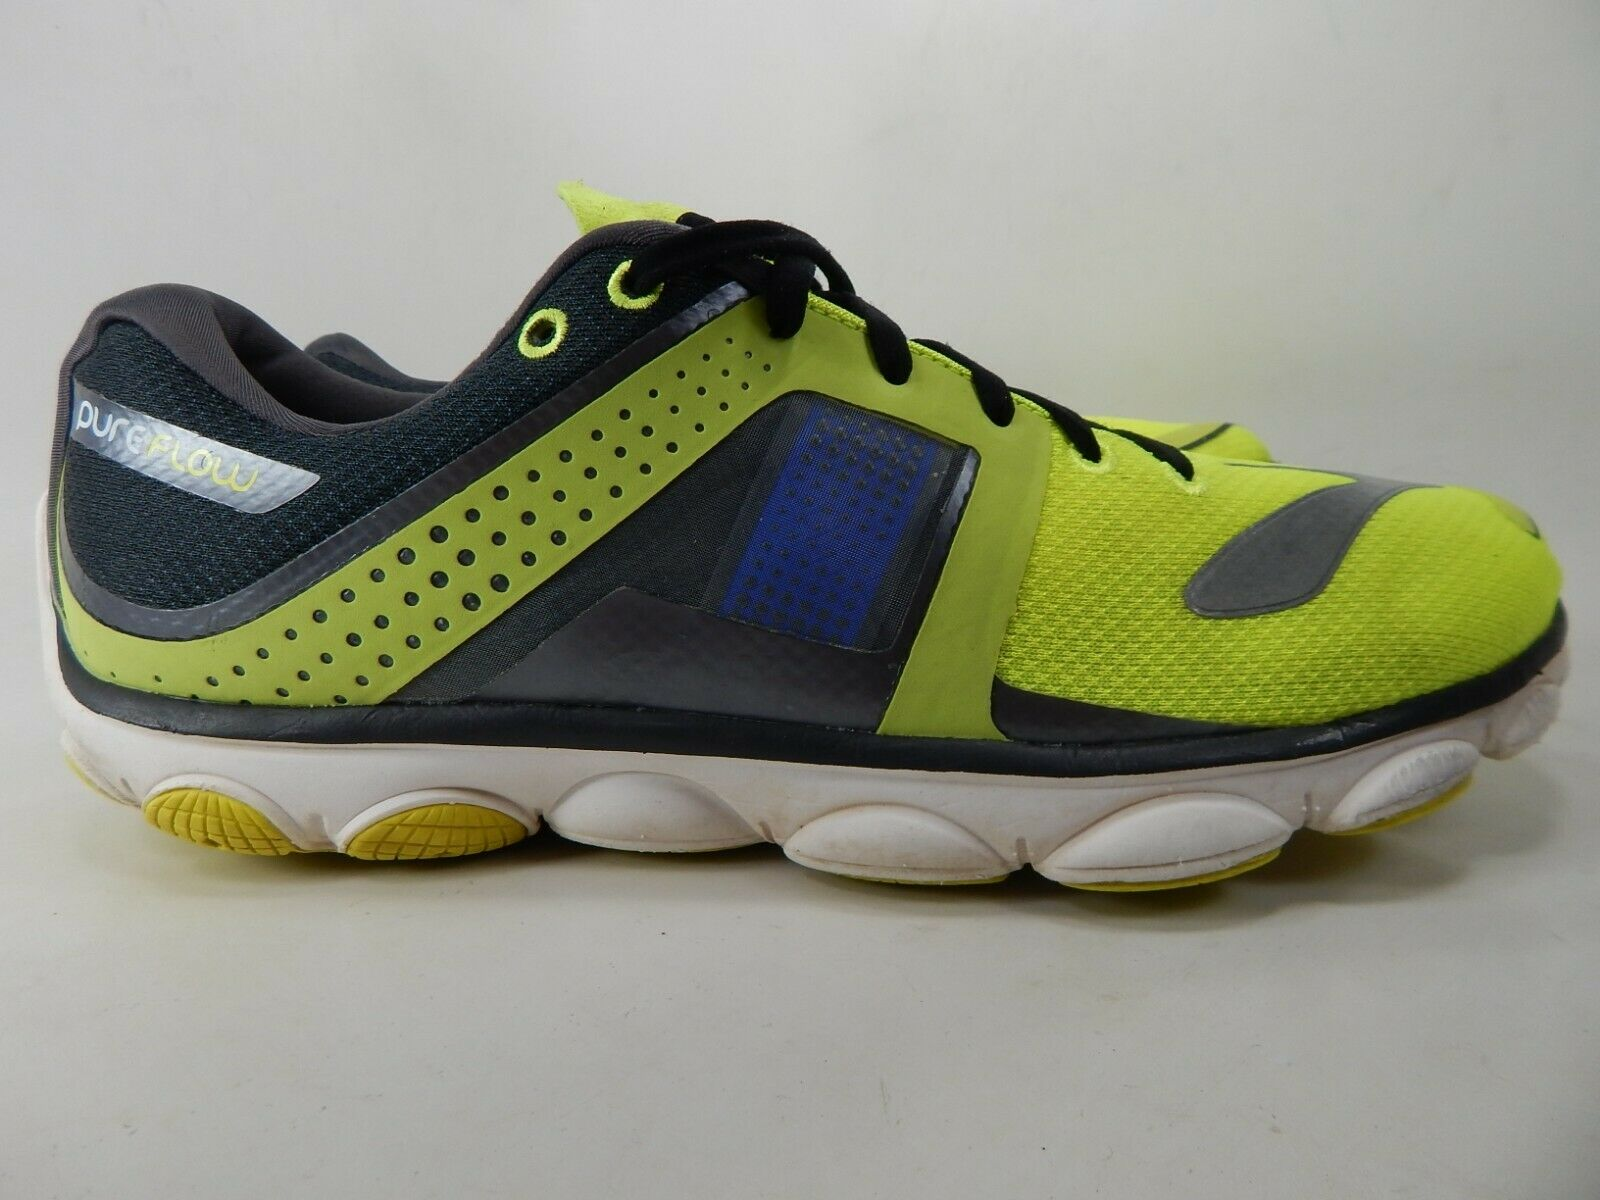 Brooks Pure Flow 4 Sz 10.5 M (D) EU 44.5 Men's Running shoes Citron 1101901D791